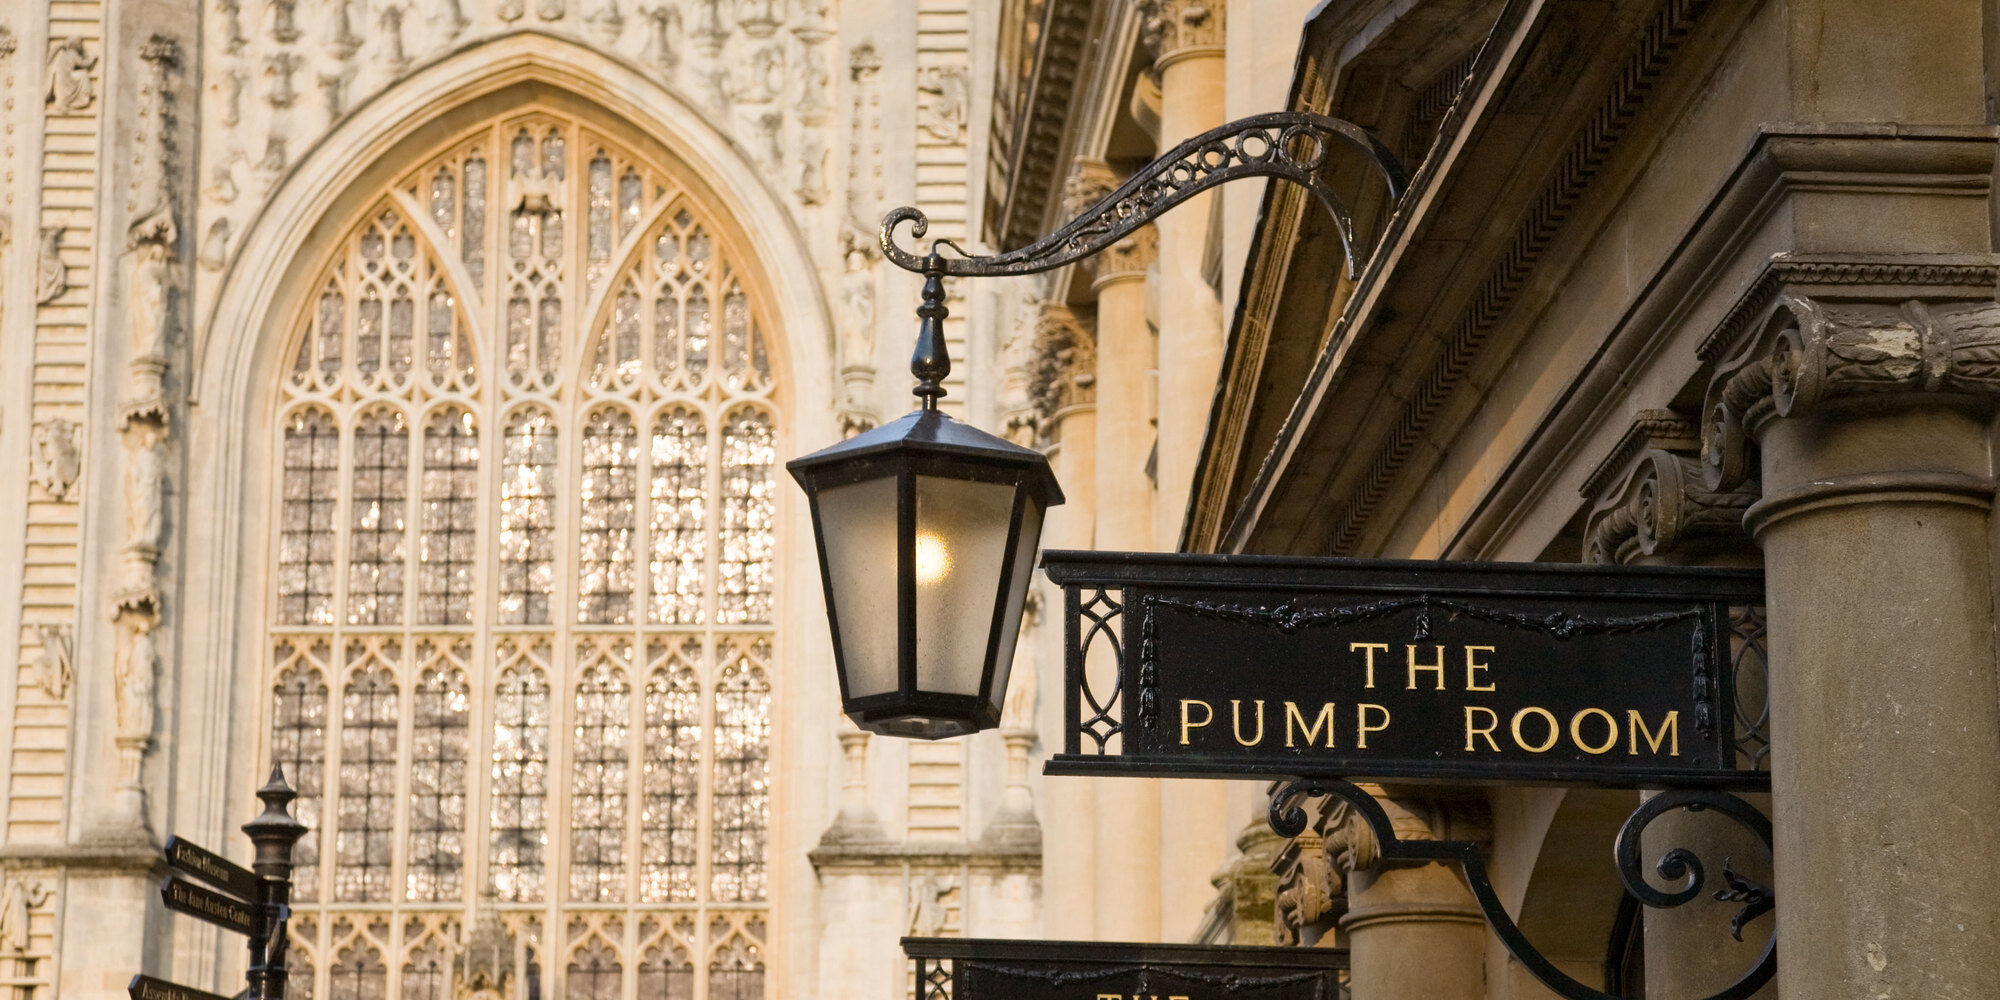 DC97JT Bath Pump rooms exterior signs and columns with the west window of Bath Abbey in the background.